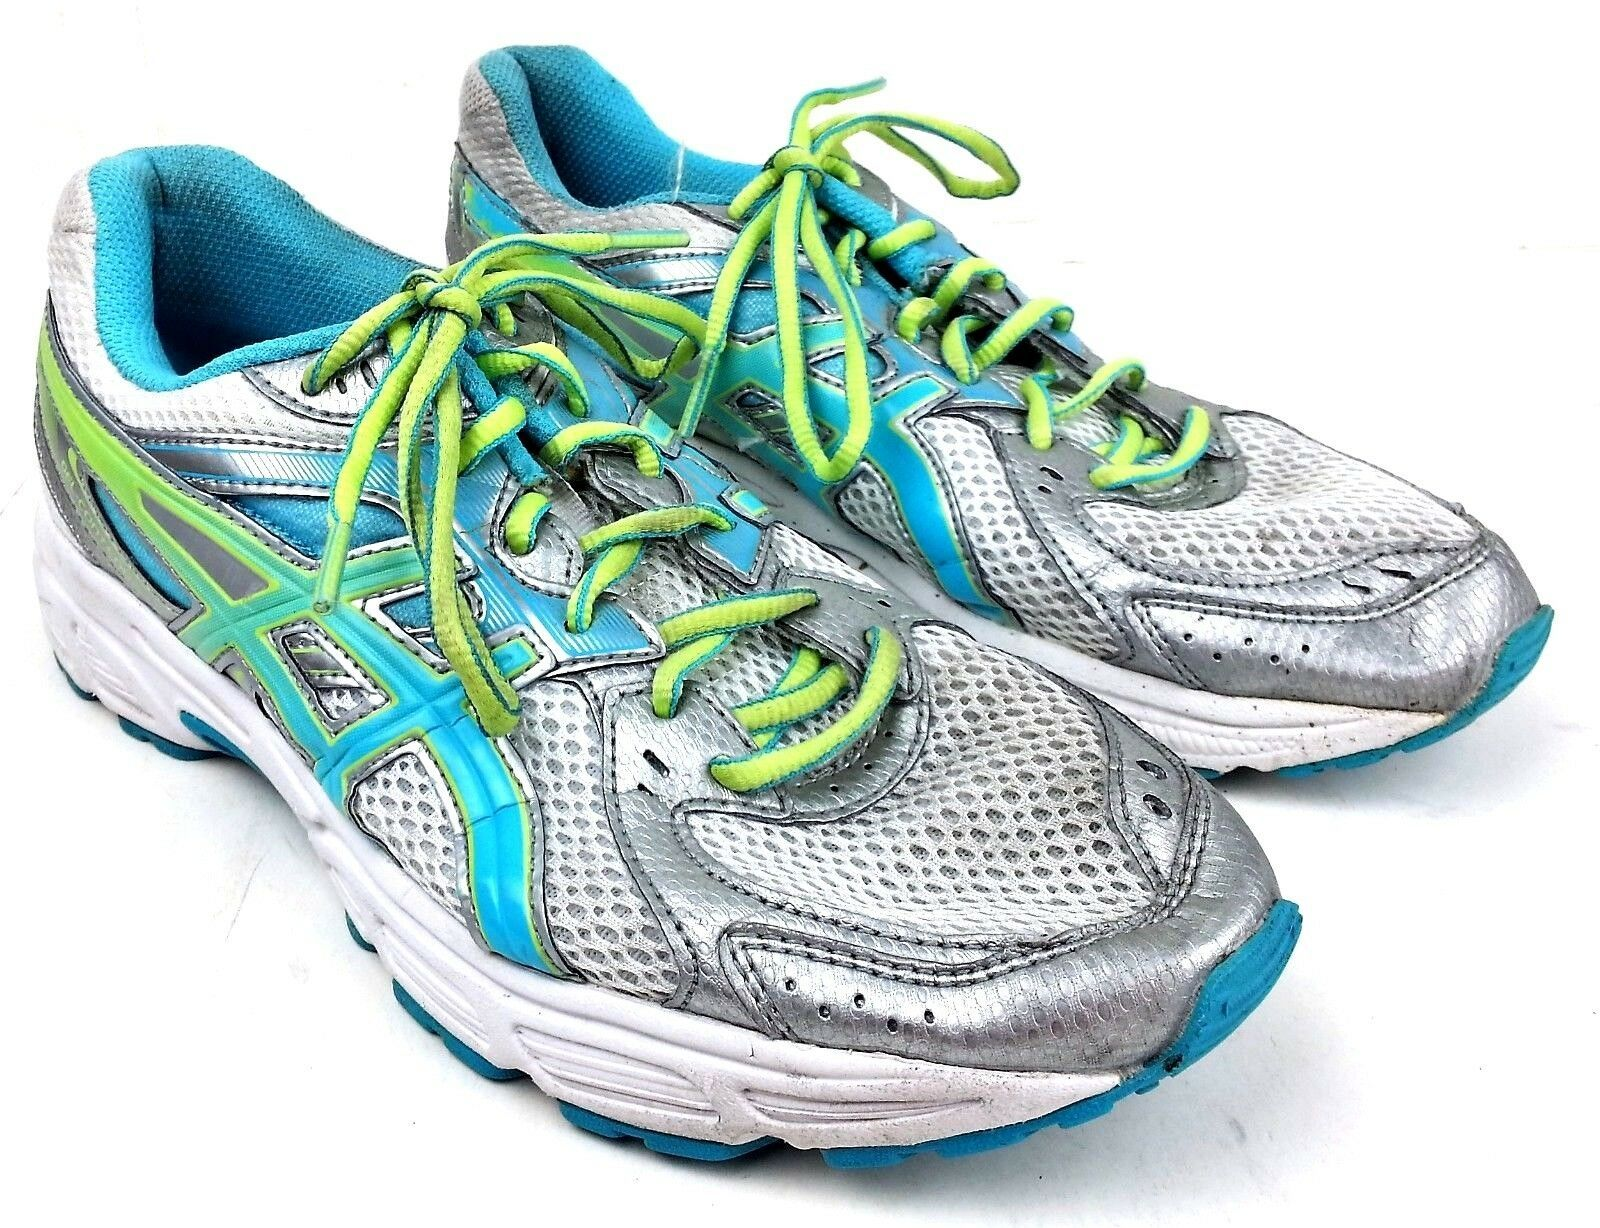 Asics Womens Gel Contend 2 Running Shoes Size 9.5 Sneakers T474N Silver Teal